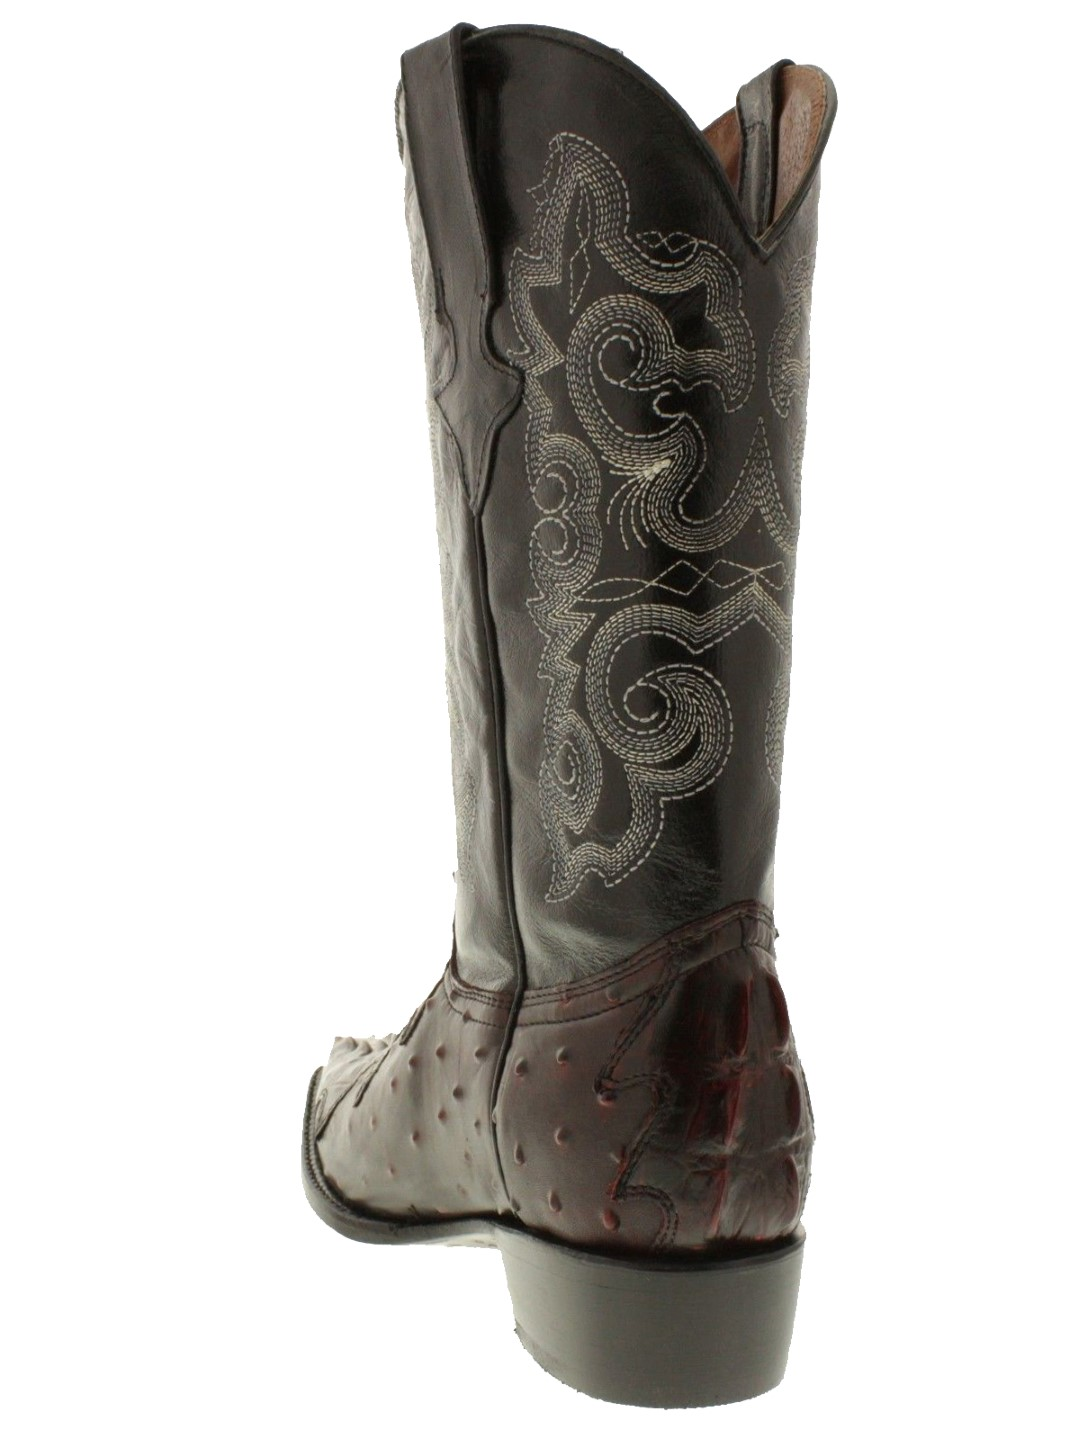 e6c33ee4b35 Details about Mens Western Cowboy Boots Crocodile Ostrich Leather Assorted  Colors J Toe